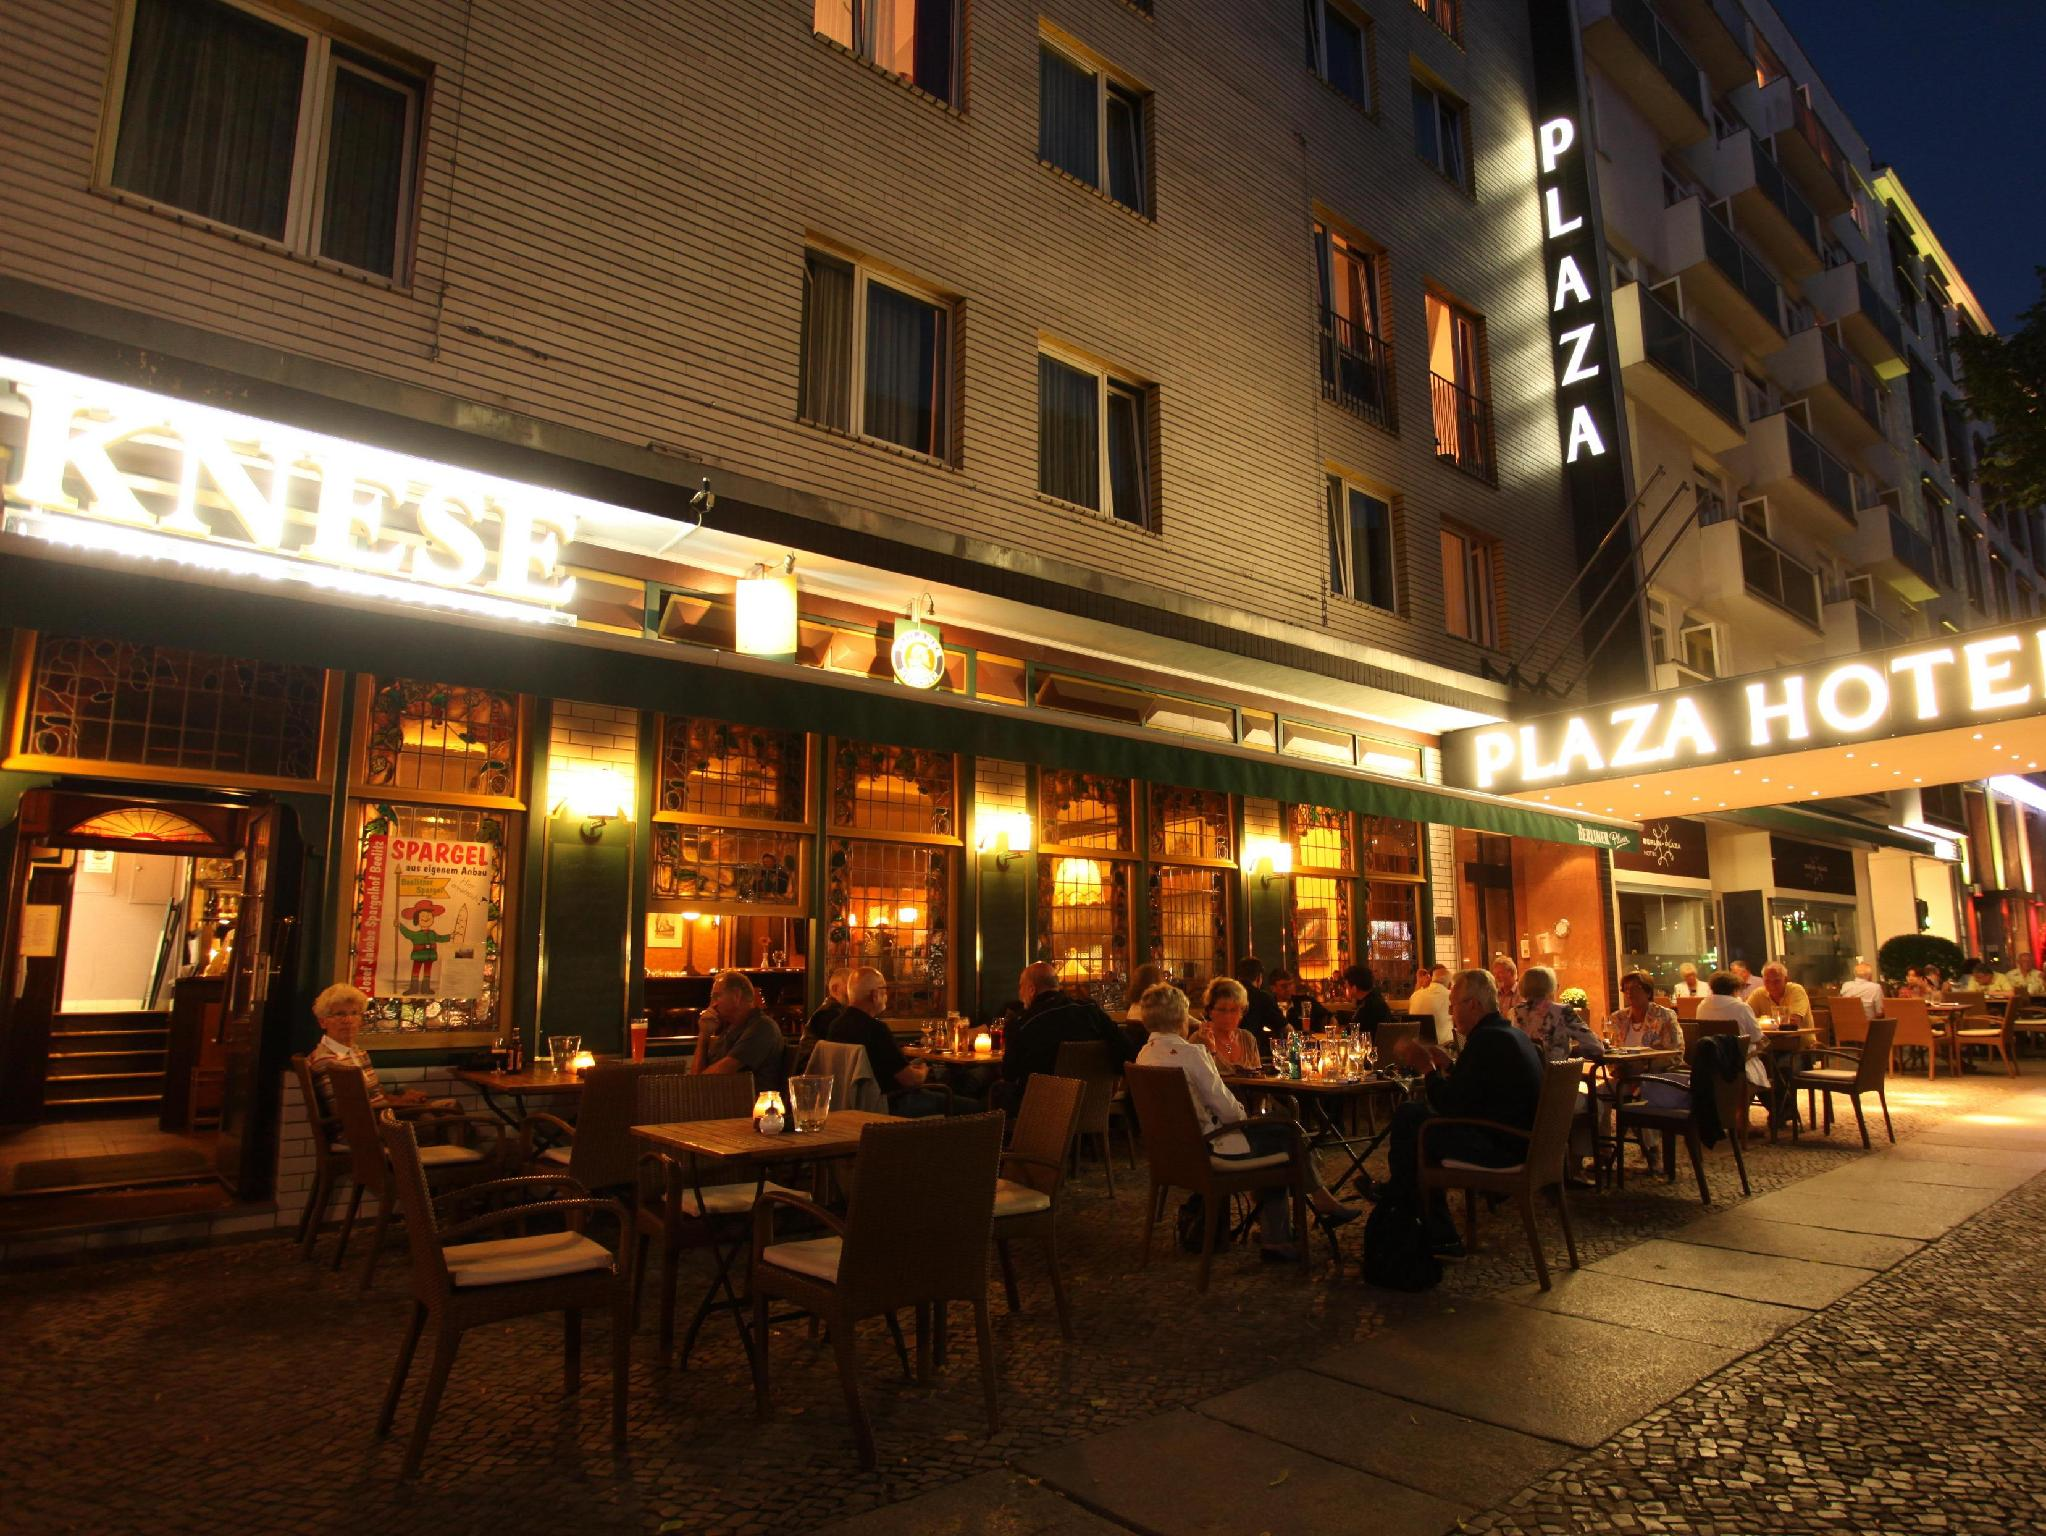 Berlin Plaza Hotel am Kurfurstendamm Berlino